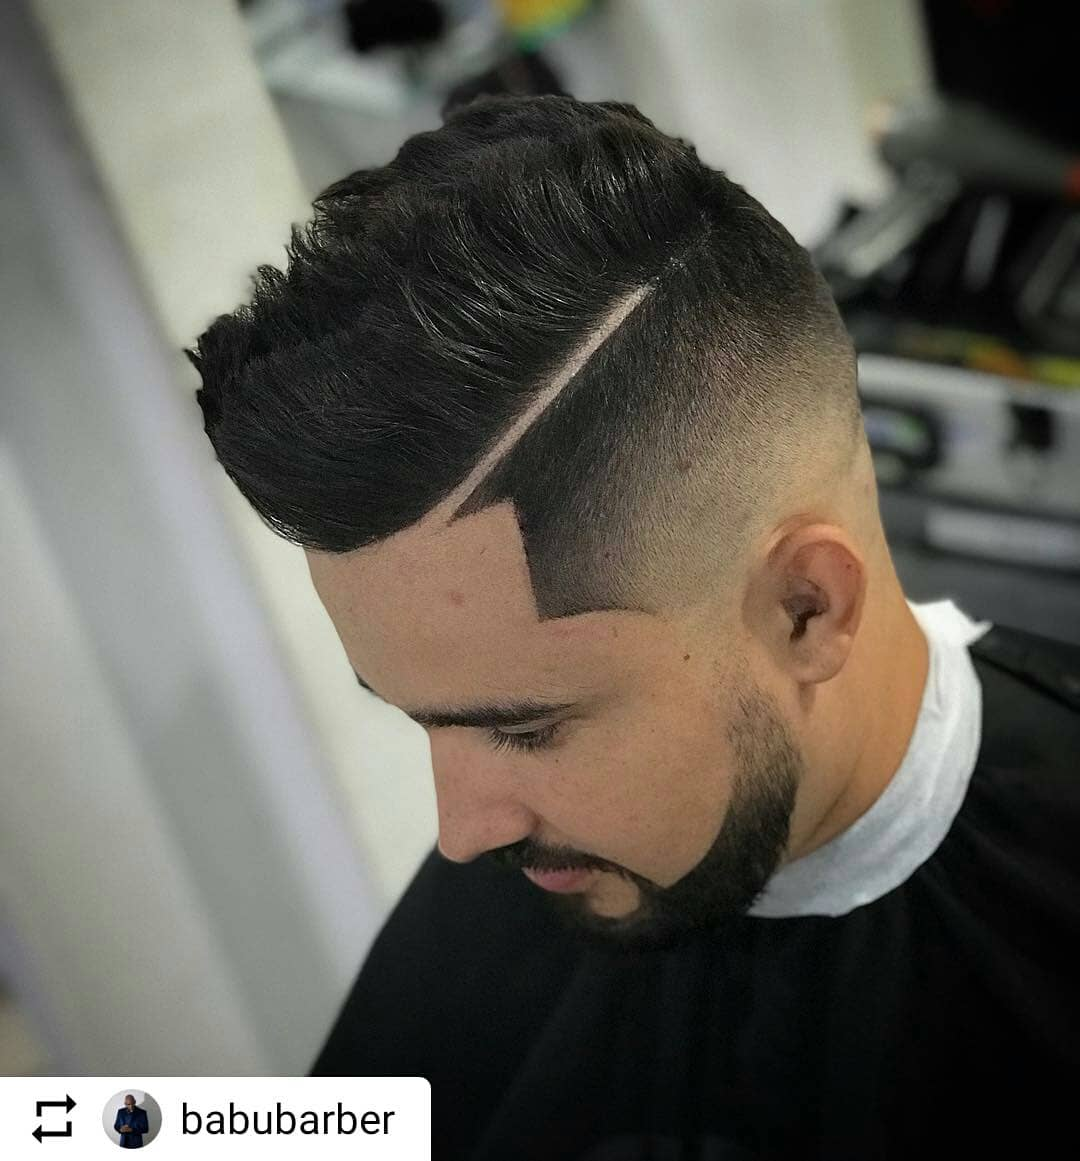 barber_world_repost taper fade haircut with shaved line